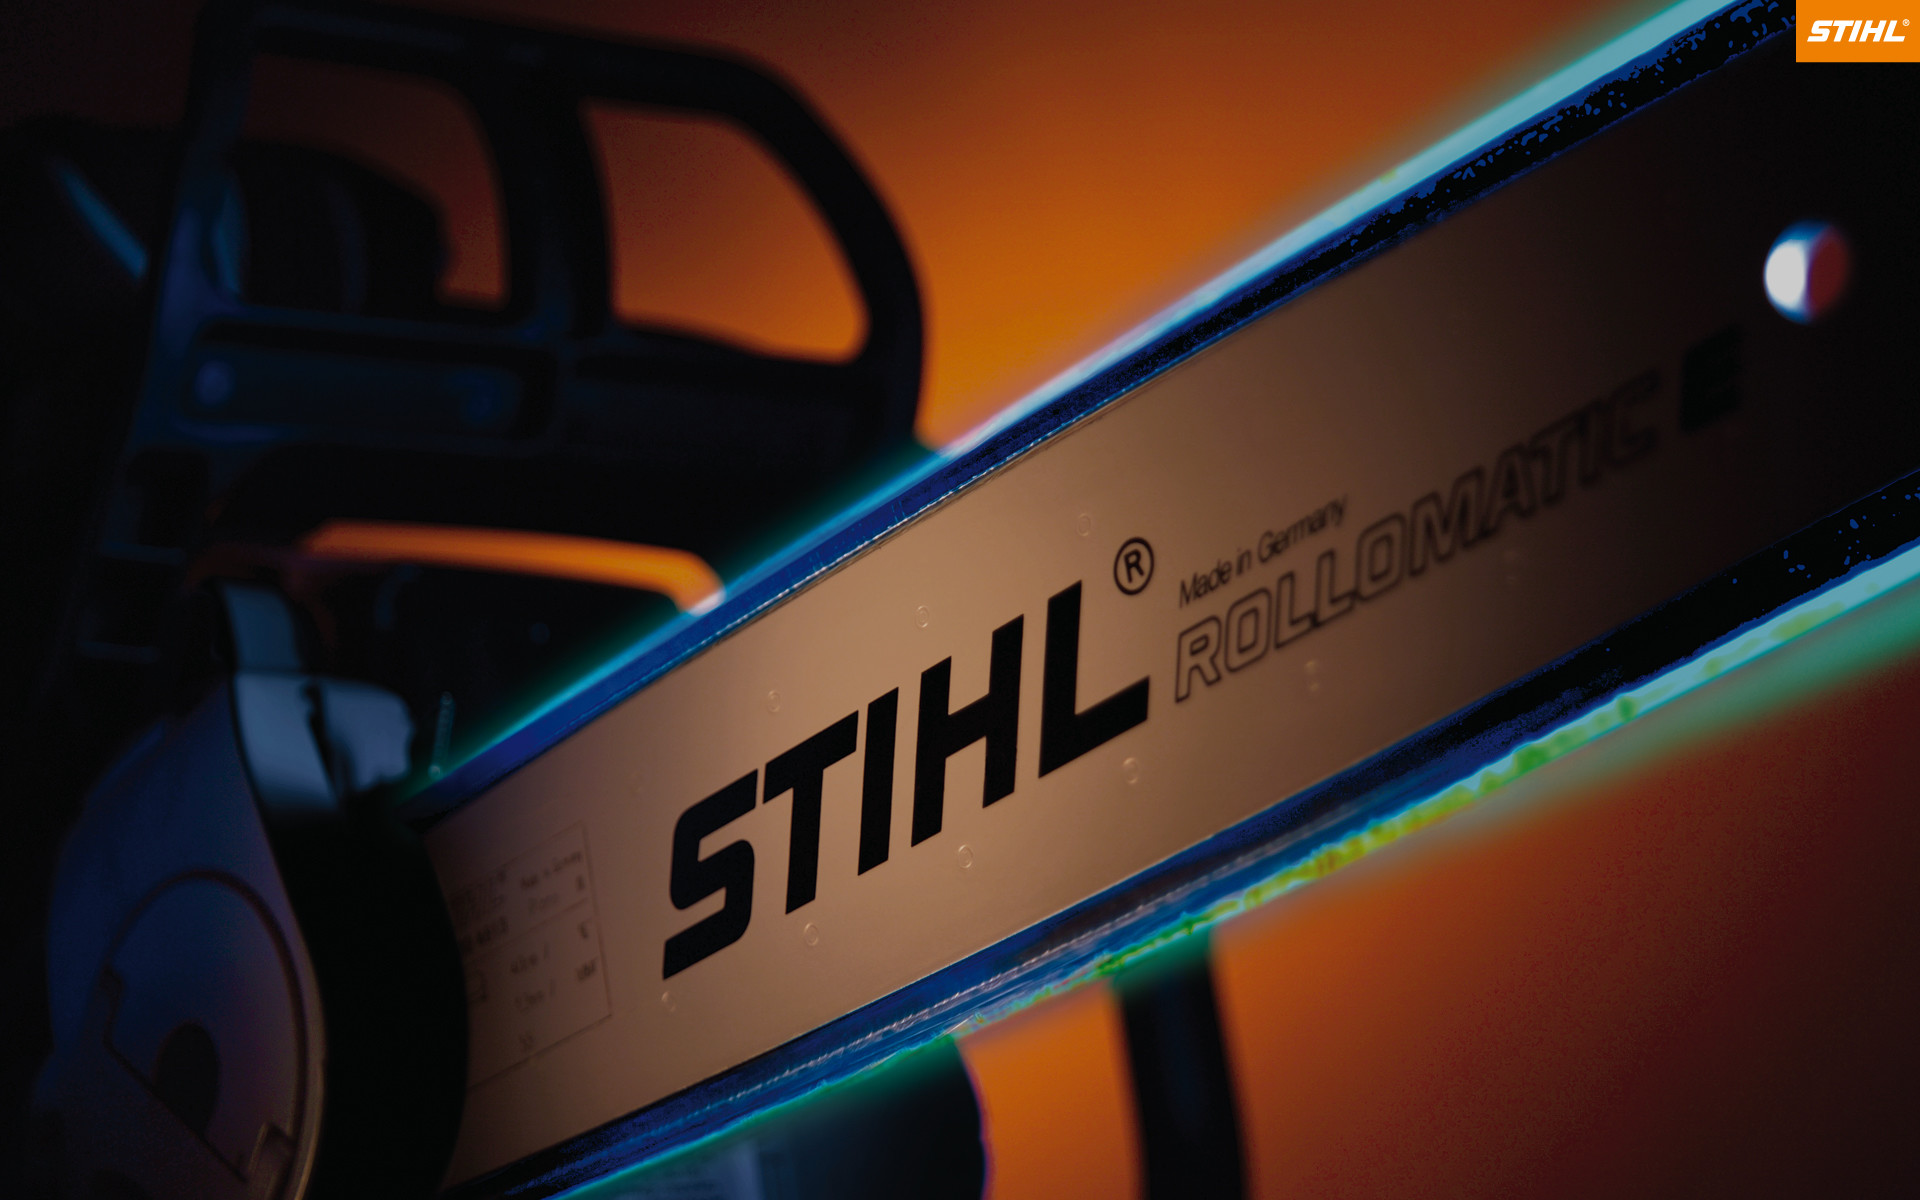 Stihl Wallpaper Backgrounds in HD 57 images 1920x1200